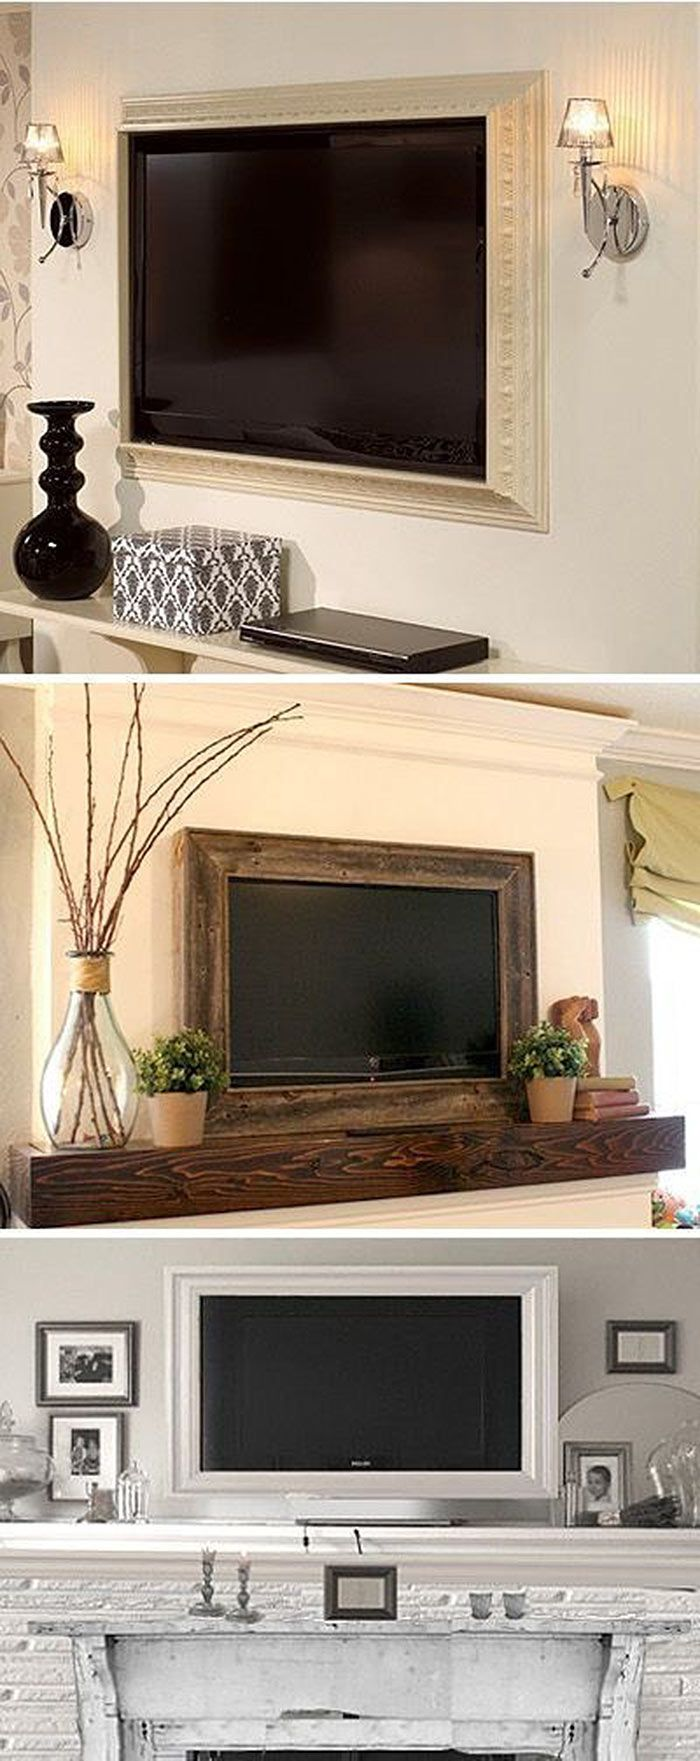 Best 25+ Tv Wall Mount Ideas On Pinterest | Wall Mounted Tv Unit, Lcd Wall  Design And Tv Cabinet Wall Design